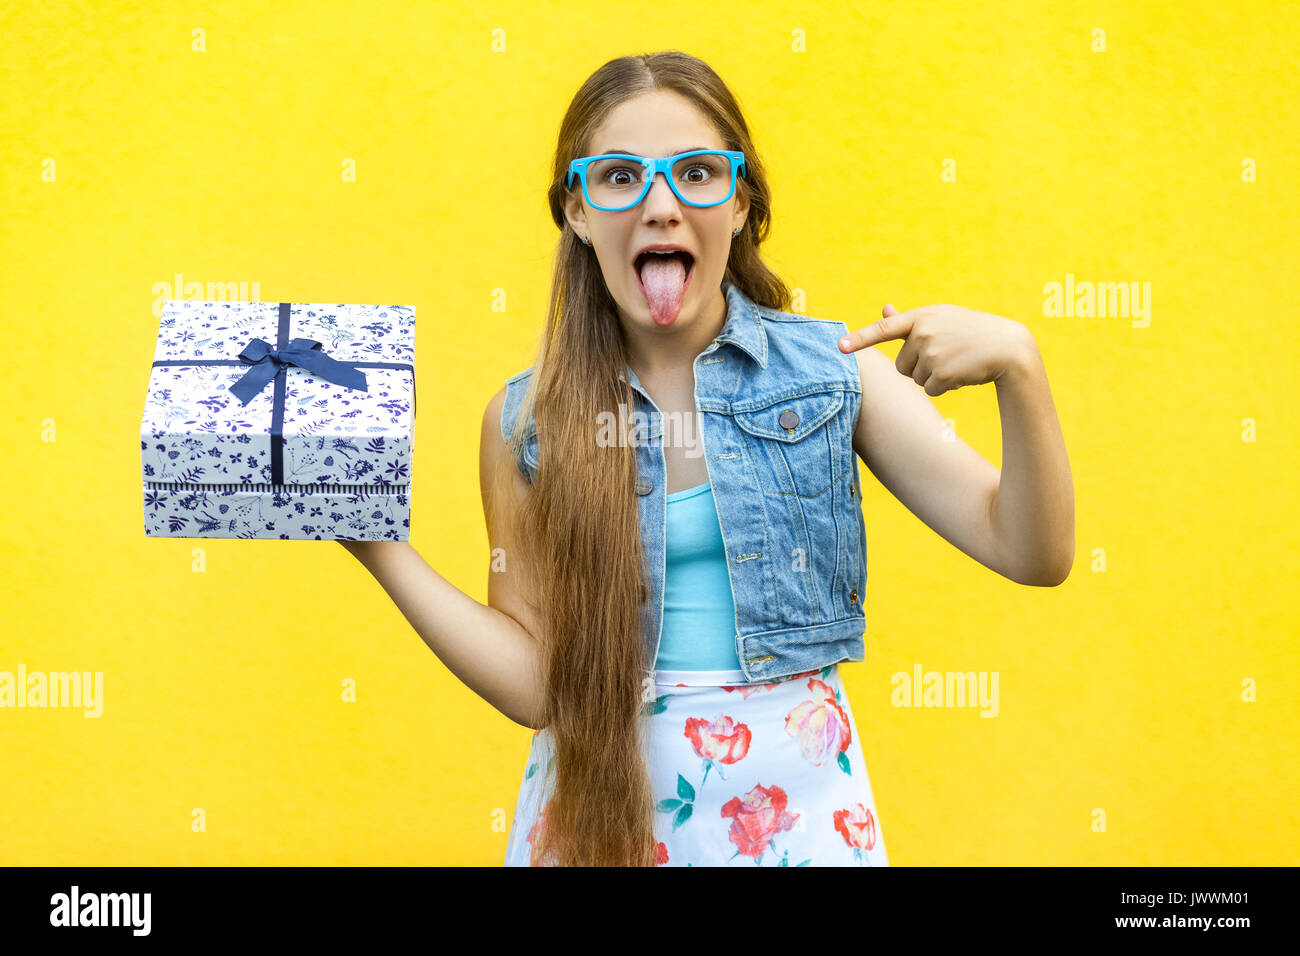 The funny blonde girl in dress and blue glasses, tongue out at the camera, pointing finger on present box, isolated over yellow background. Indoor stu - Stock Image